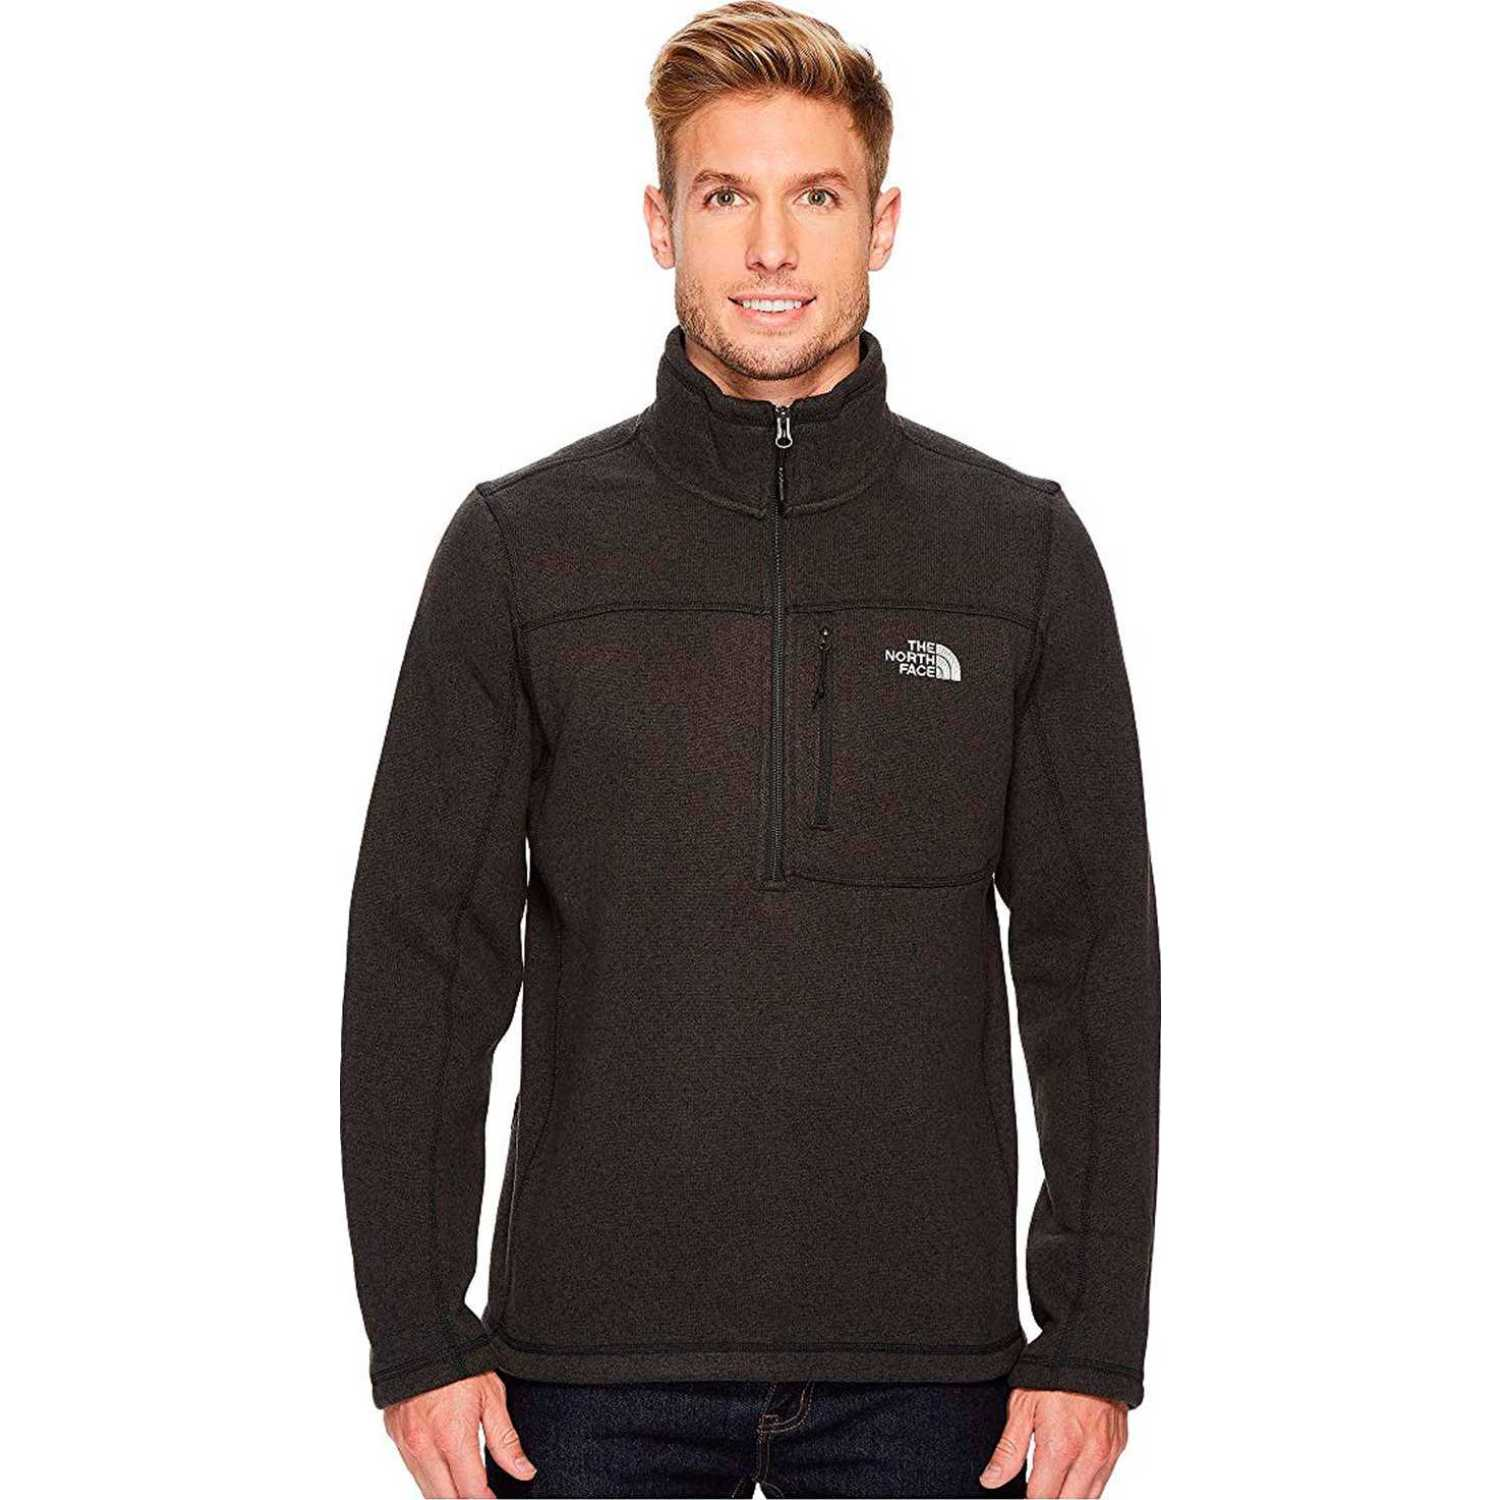 Casaca de Hombre The North Face Negro m gordon lyons 1/4 zip